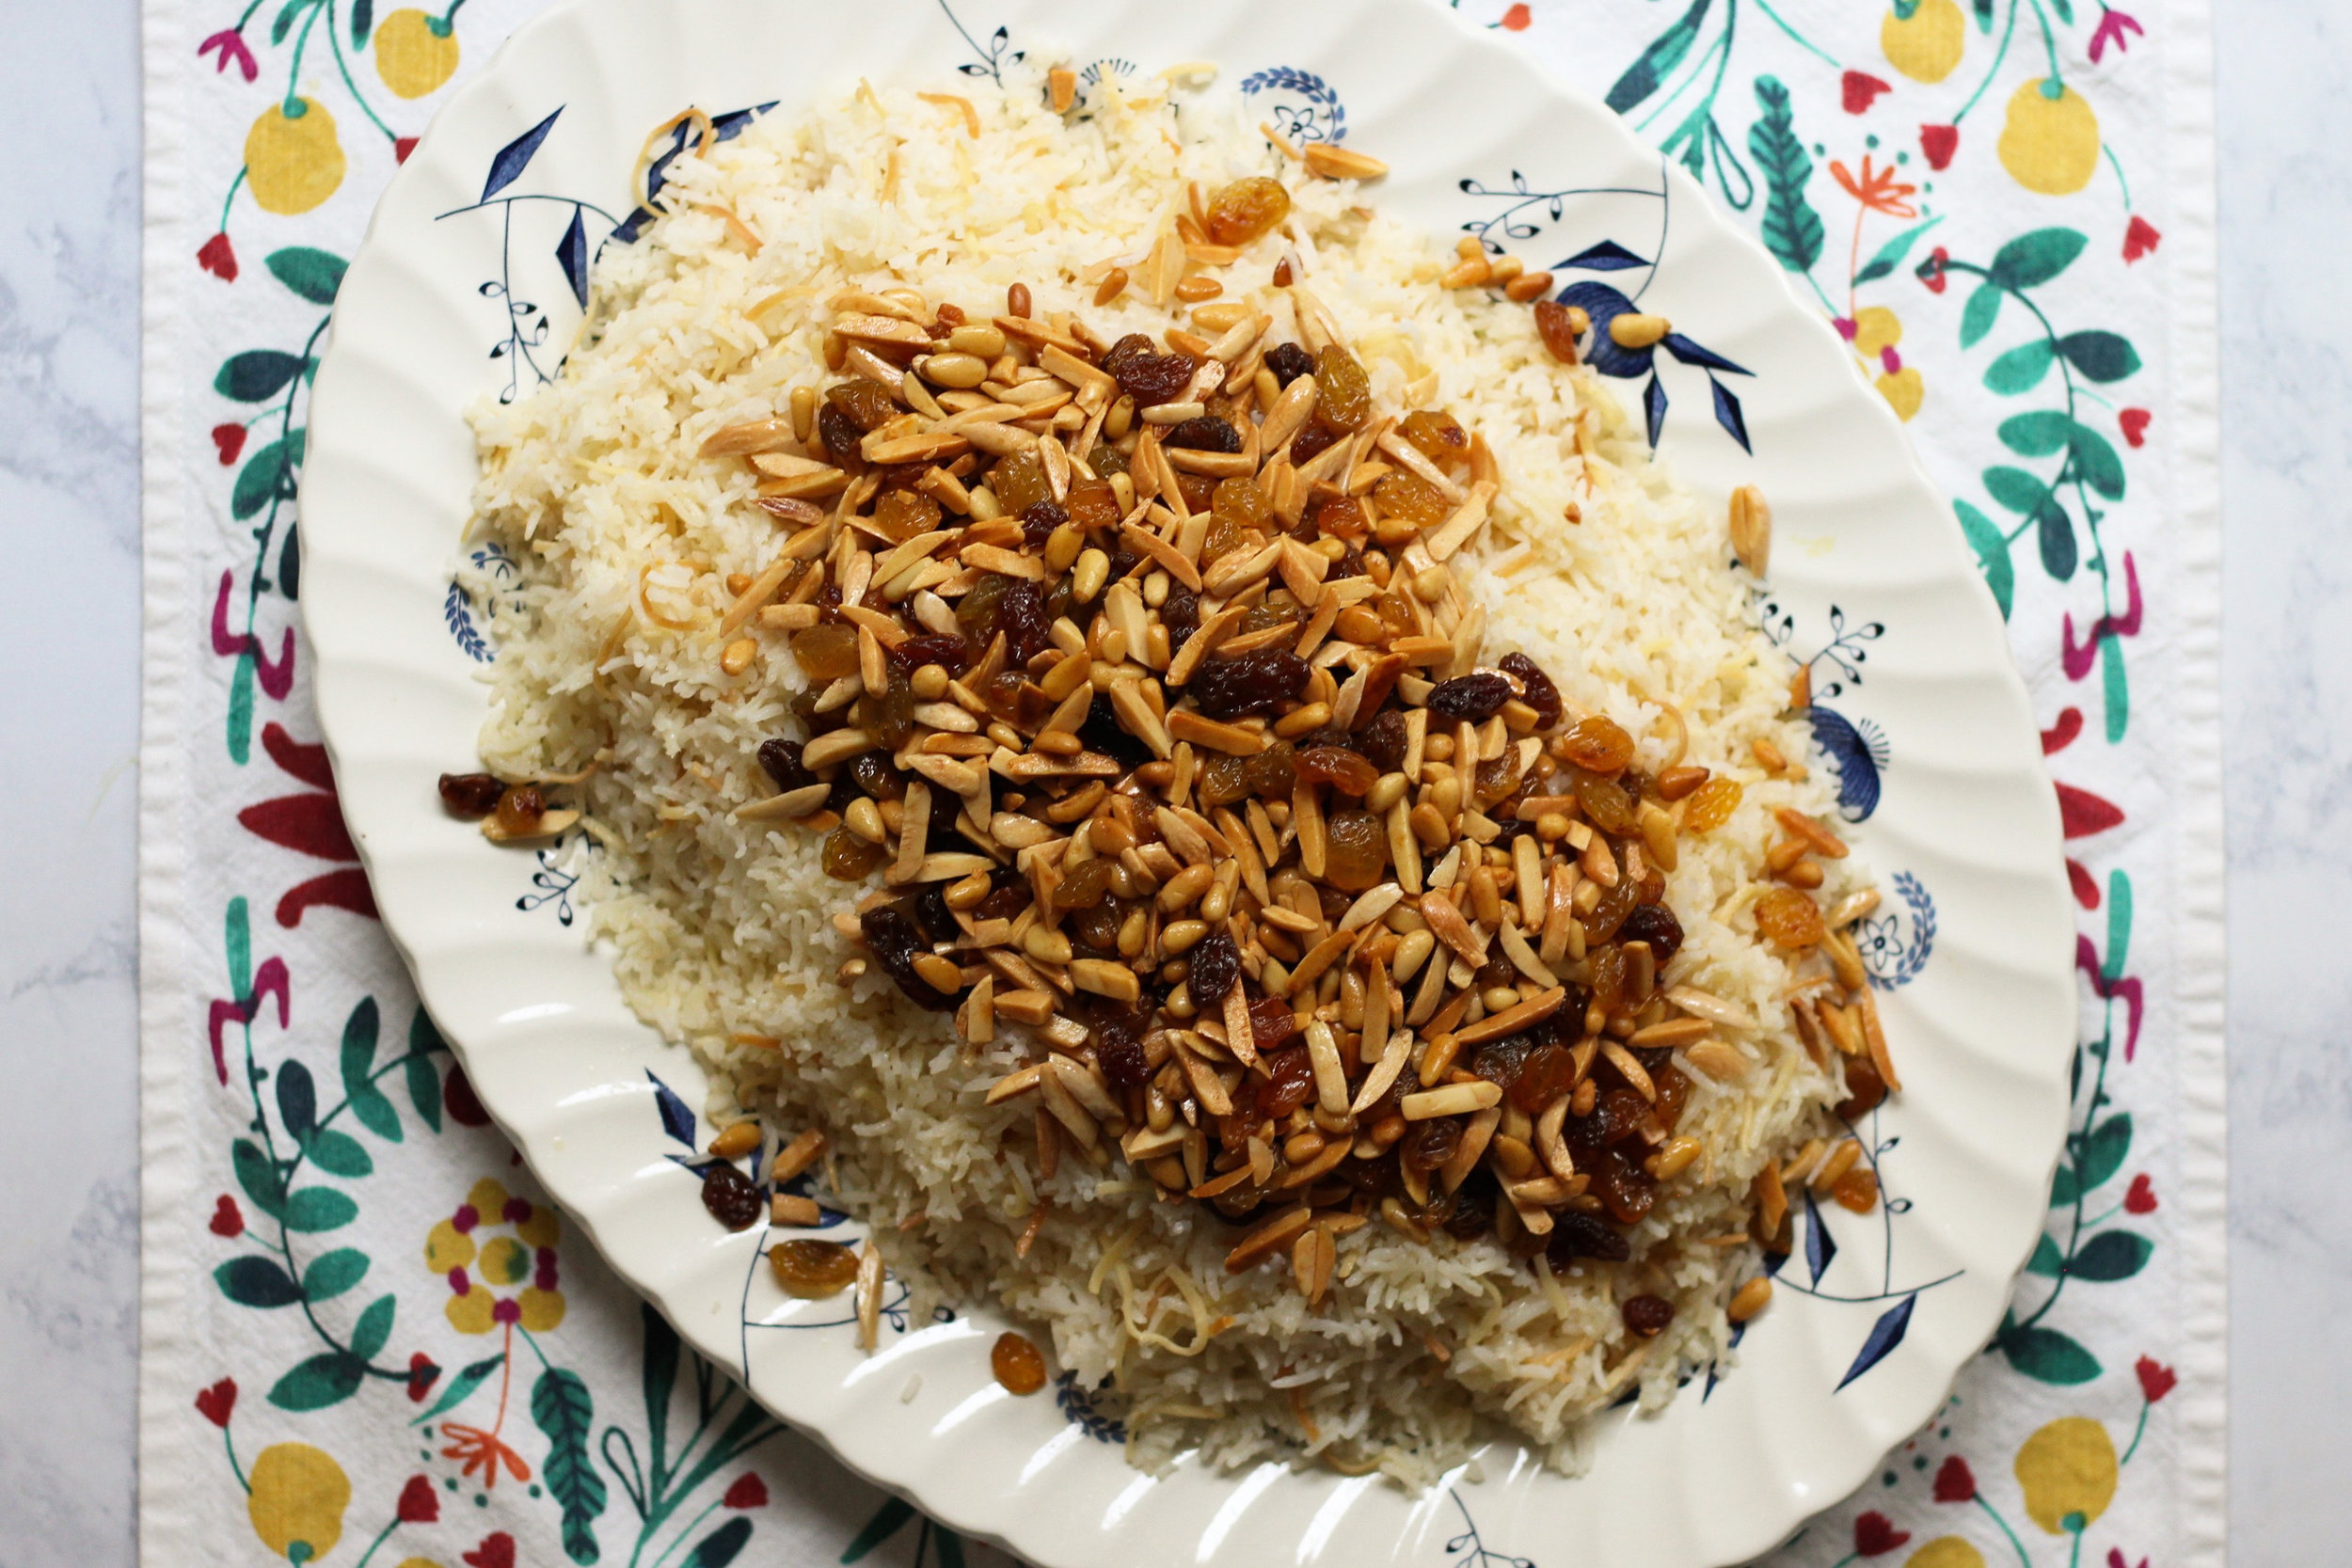 riza sh'ariyeh (rice with toasted vermicelli noodles)